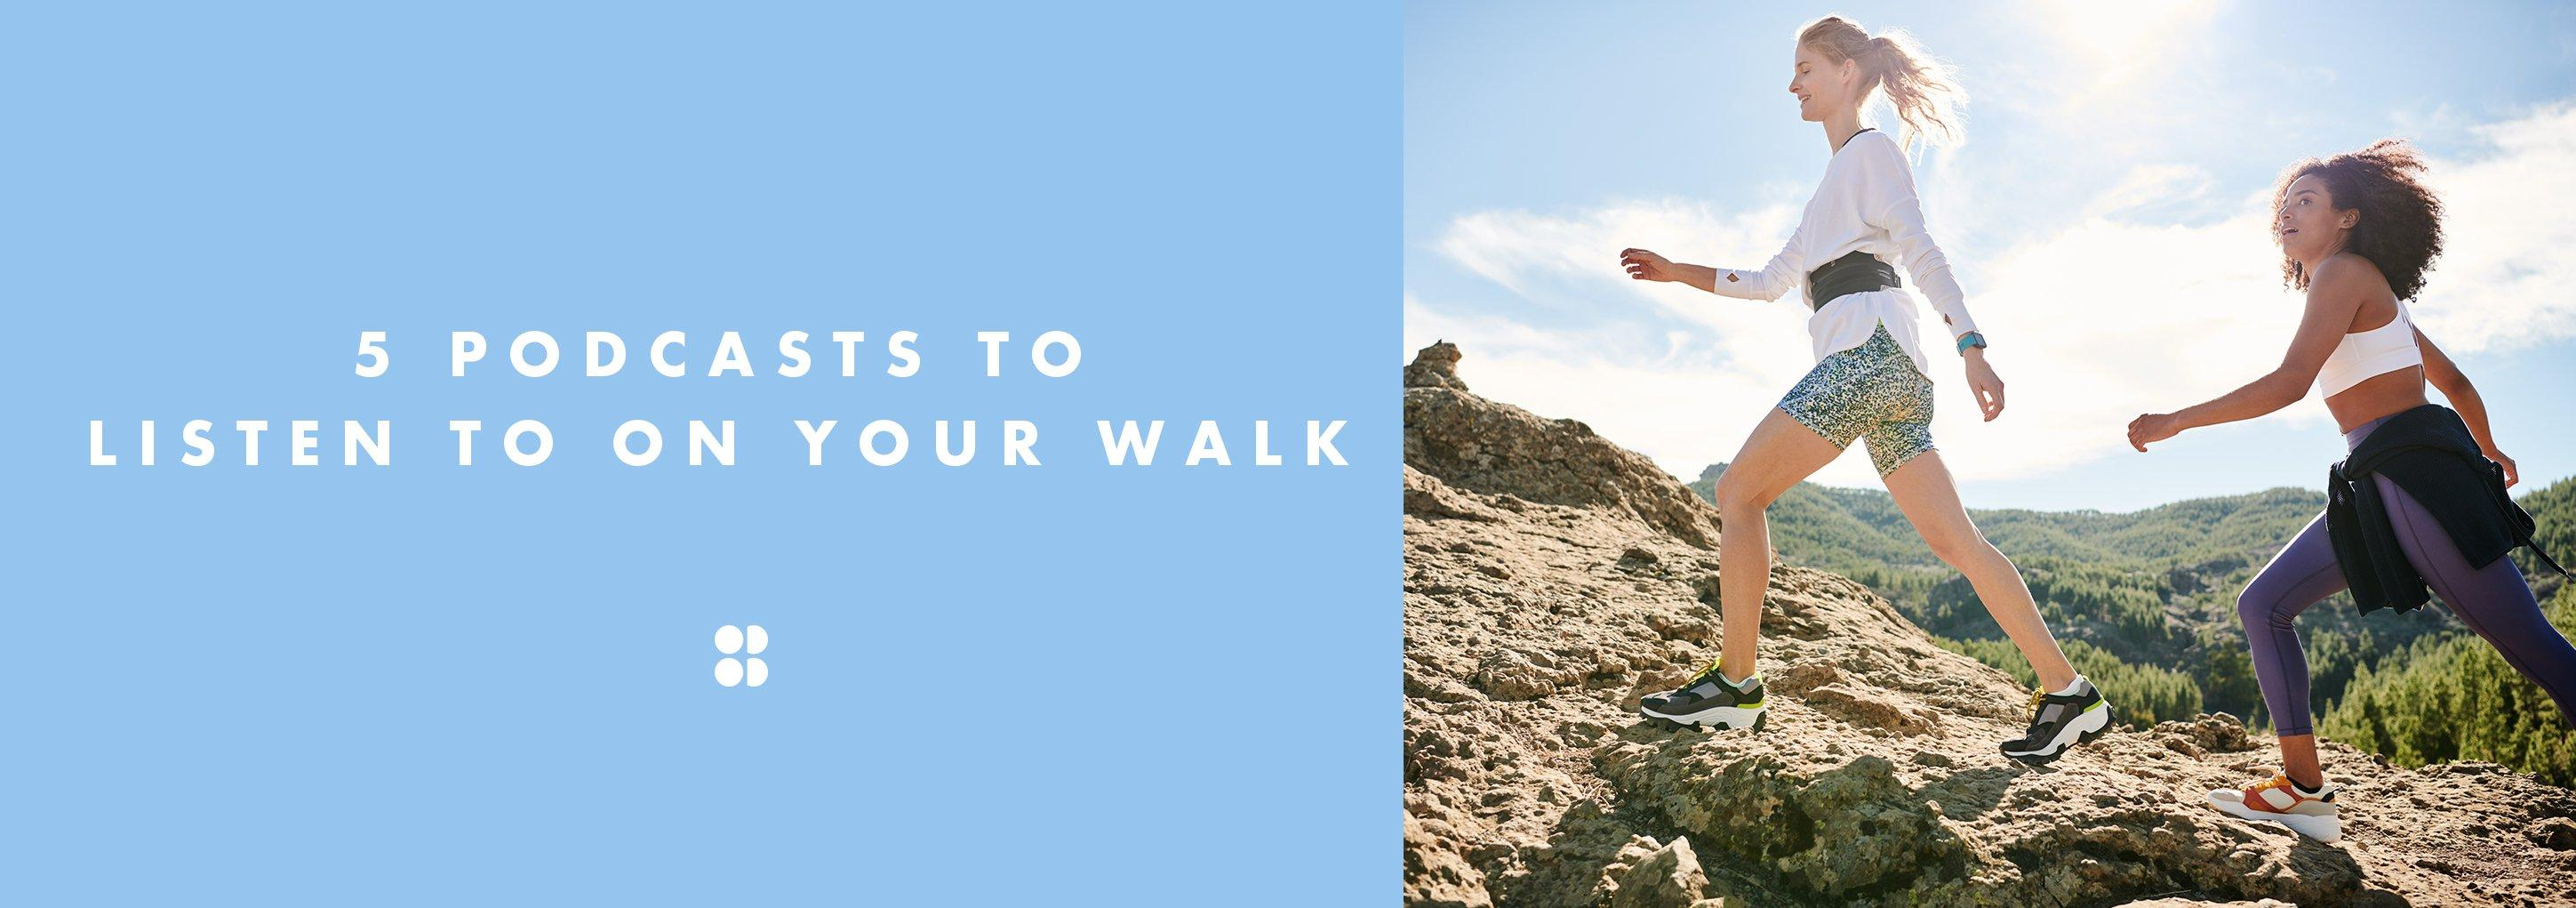 5 Podcasts To Listen To On Your Walk